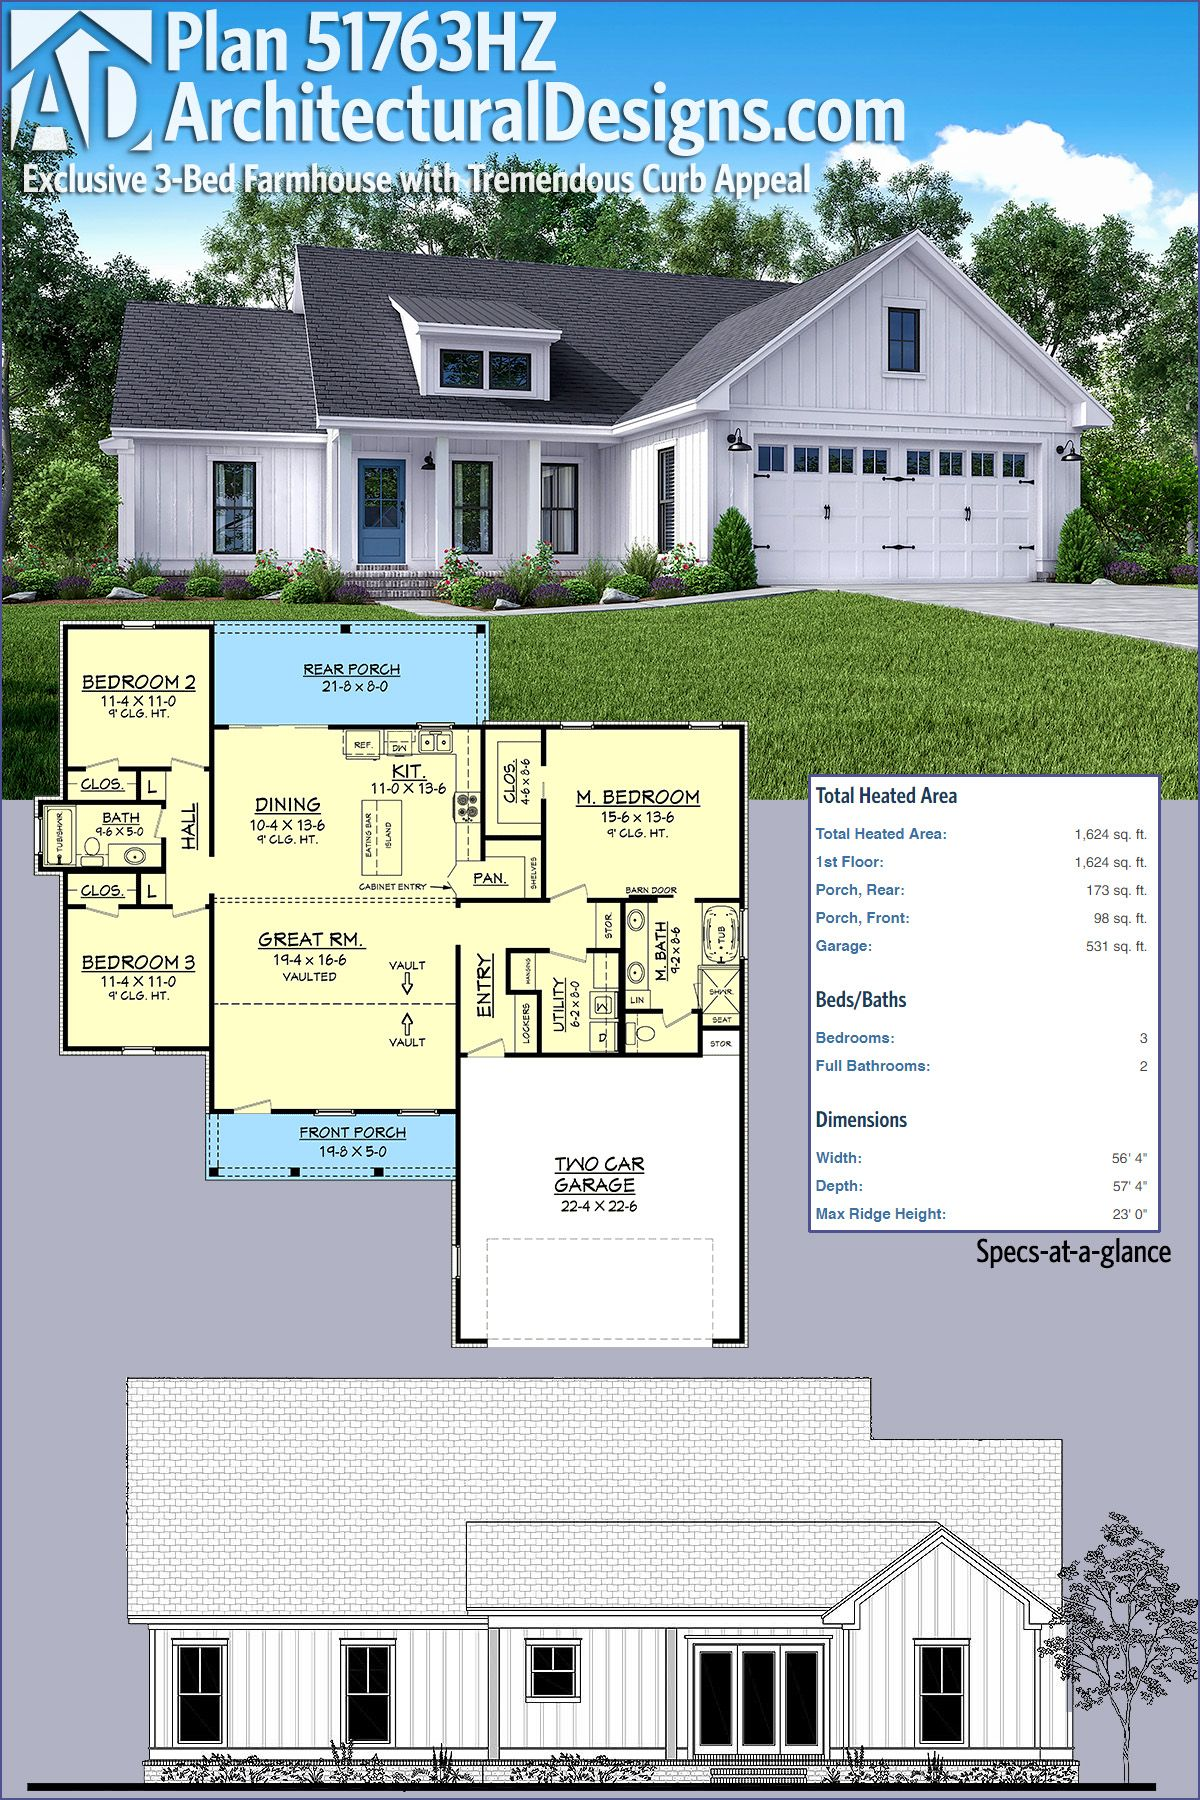 plan 51763hz exclusive 3 bed farmhouse with tremendous curb appeal